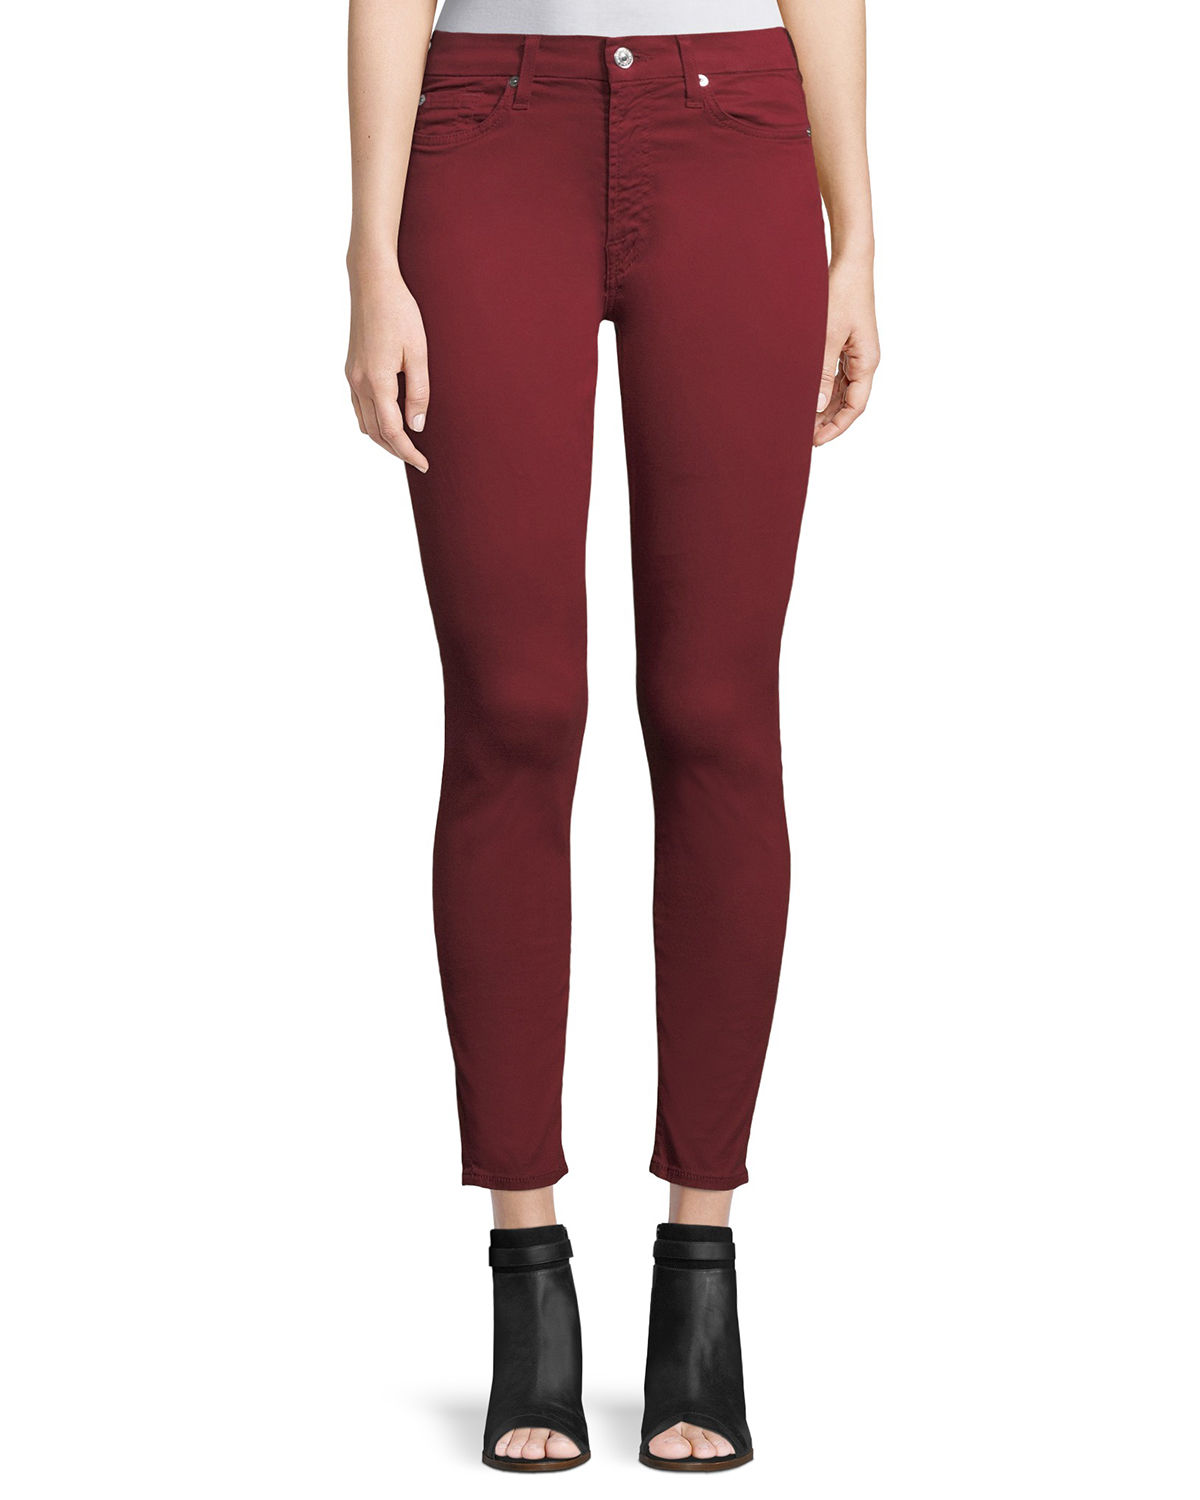 The Ankle Skinny Mid-Rise Cropped Jeans